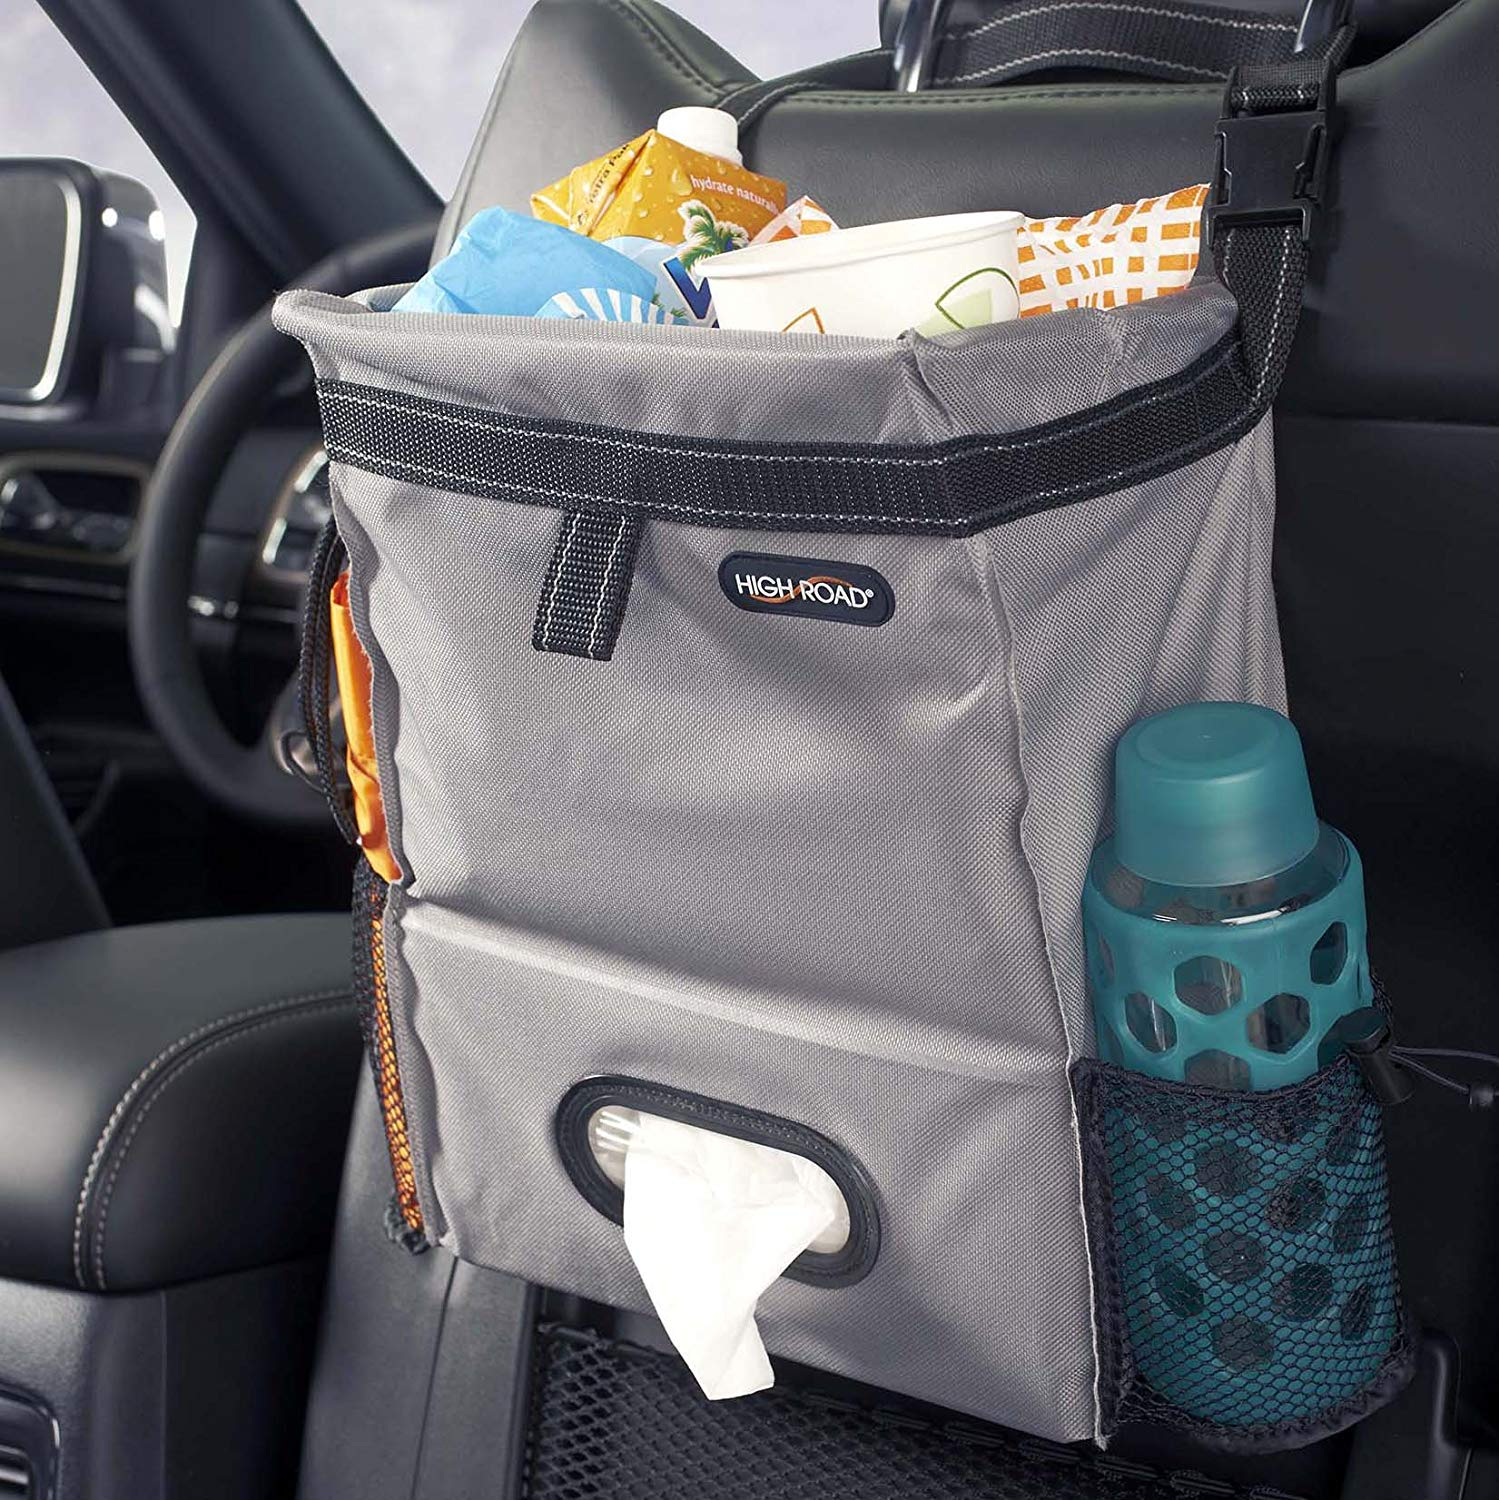 High Road Puff'nStuff Car Trash Bag Organizer and Tissue Holder